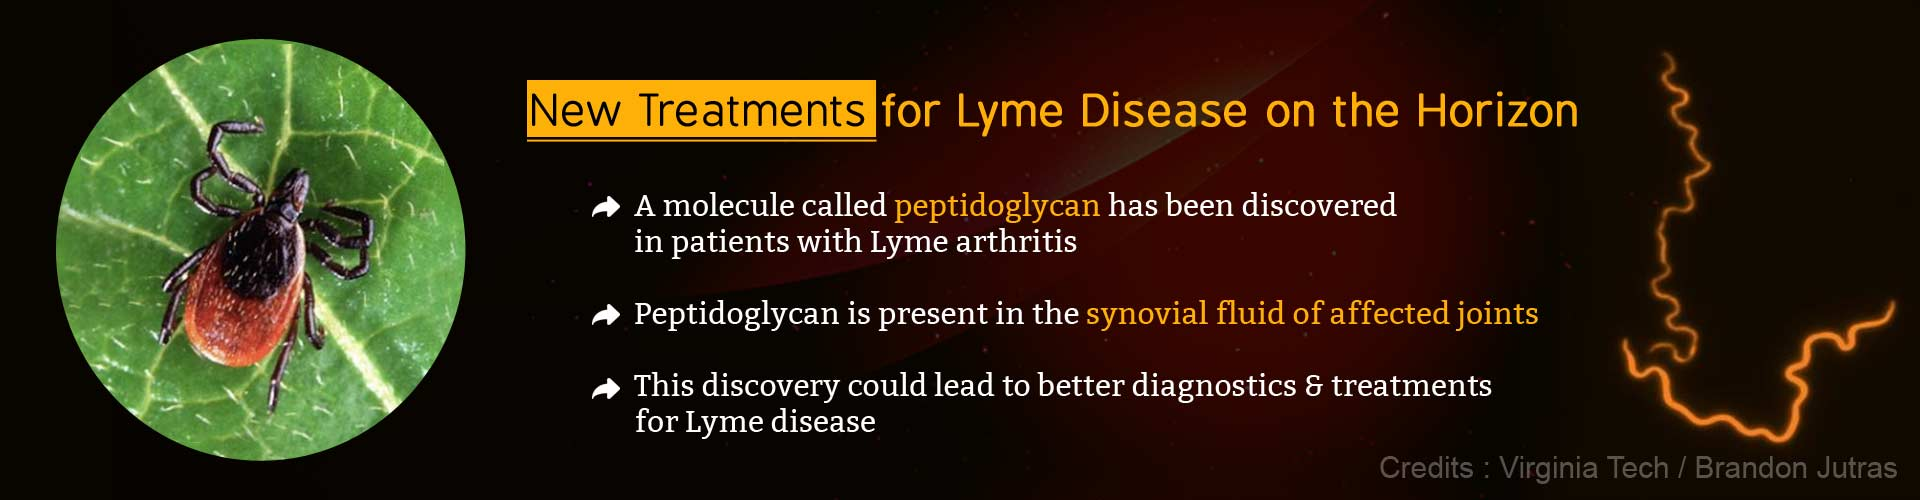 New treatments for lyme disease on the horizon. A molecule called peptidoglycan has been discovered in patients with lyme arthritis. Peptidoglycan is present in the synovial fluid of affected joints. This discovery could lead to better diagnostics and treatments for lyme disease.